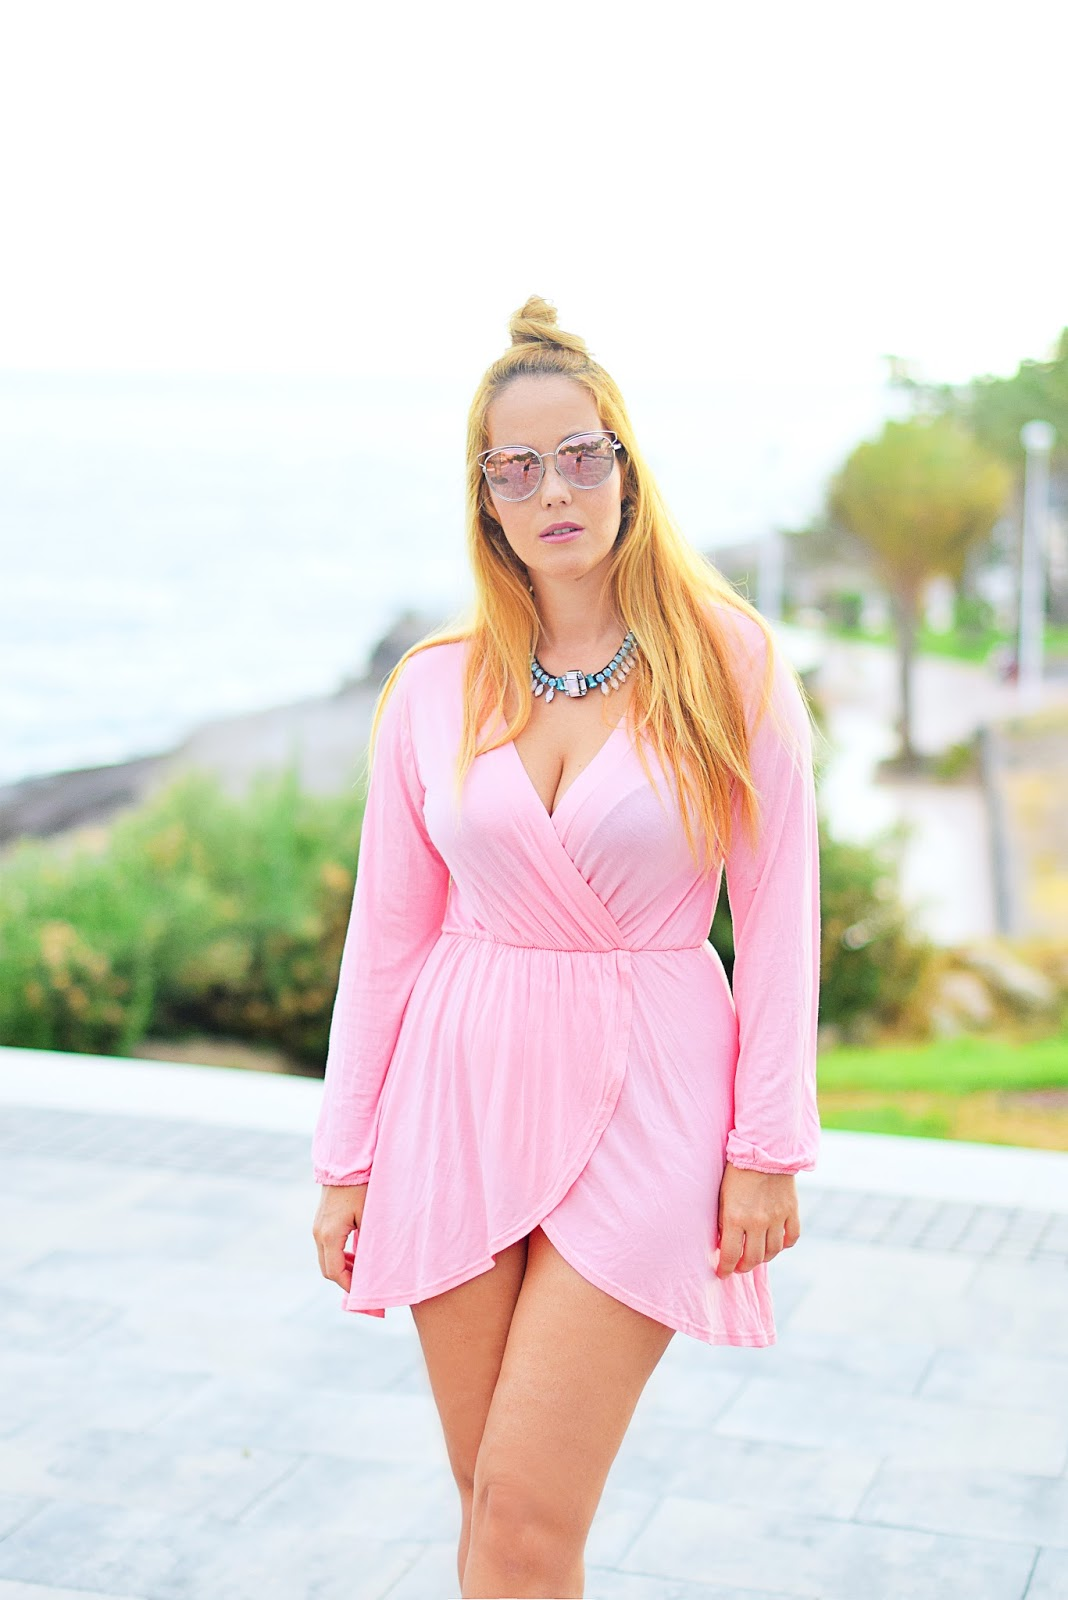 nery hdez, pink dress, dior sideral, optical h, sexy look, top knot, ottaviani